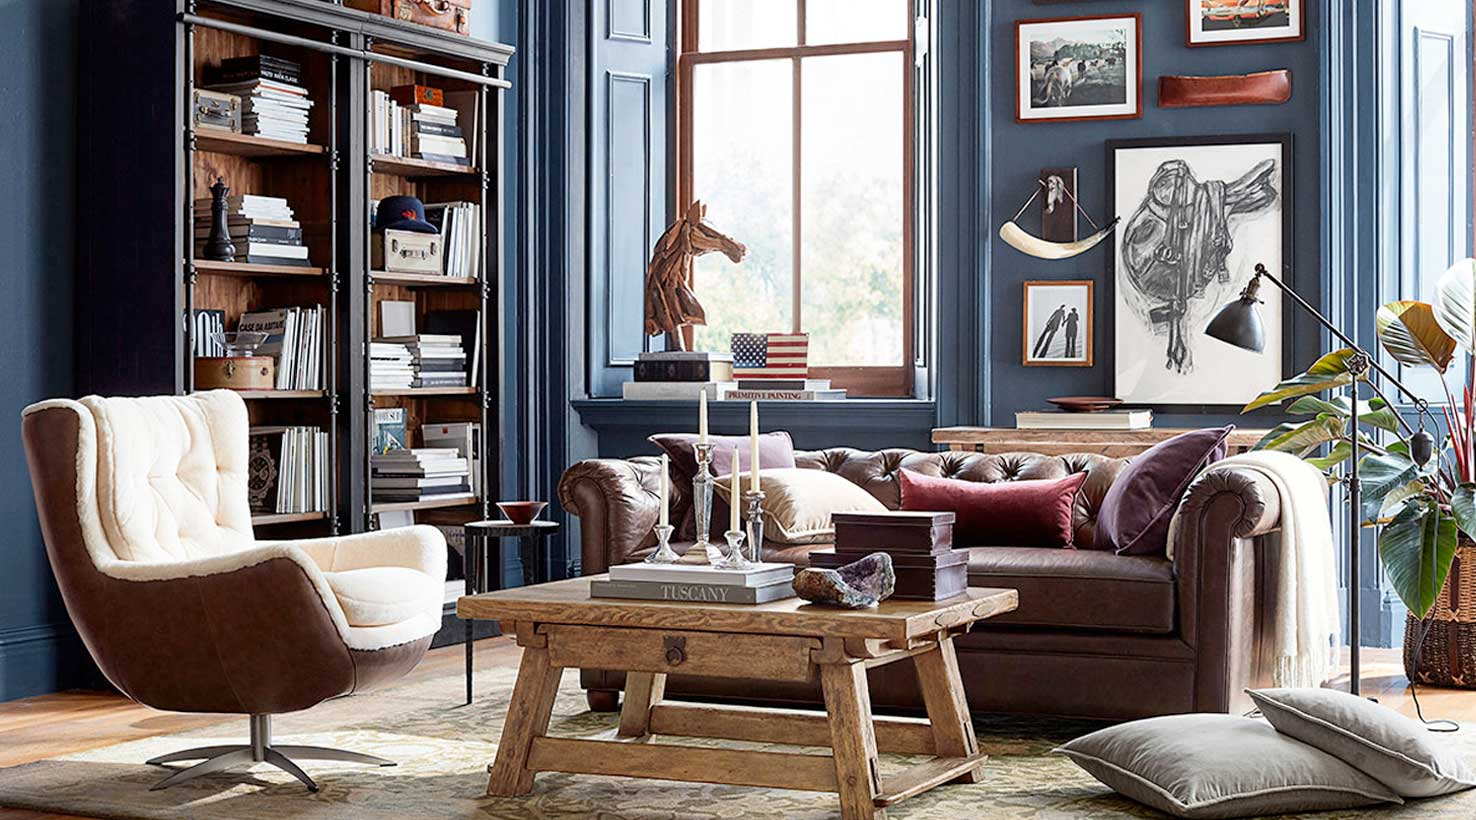 https://images.sherwin-williams.com/content_images/sw-img-living-blues-008-hdr.jpg